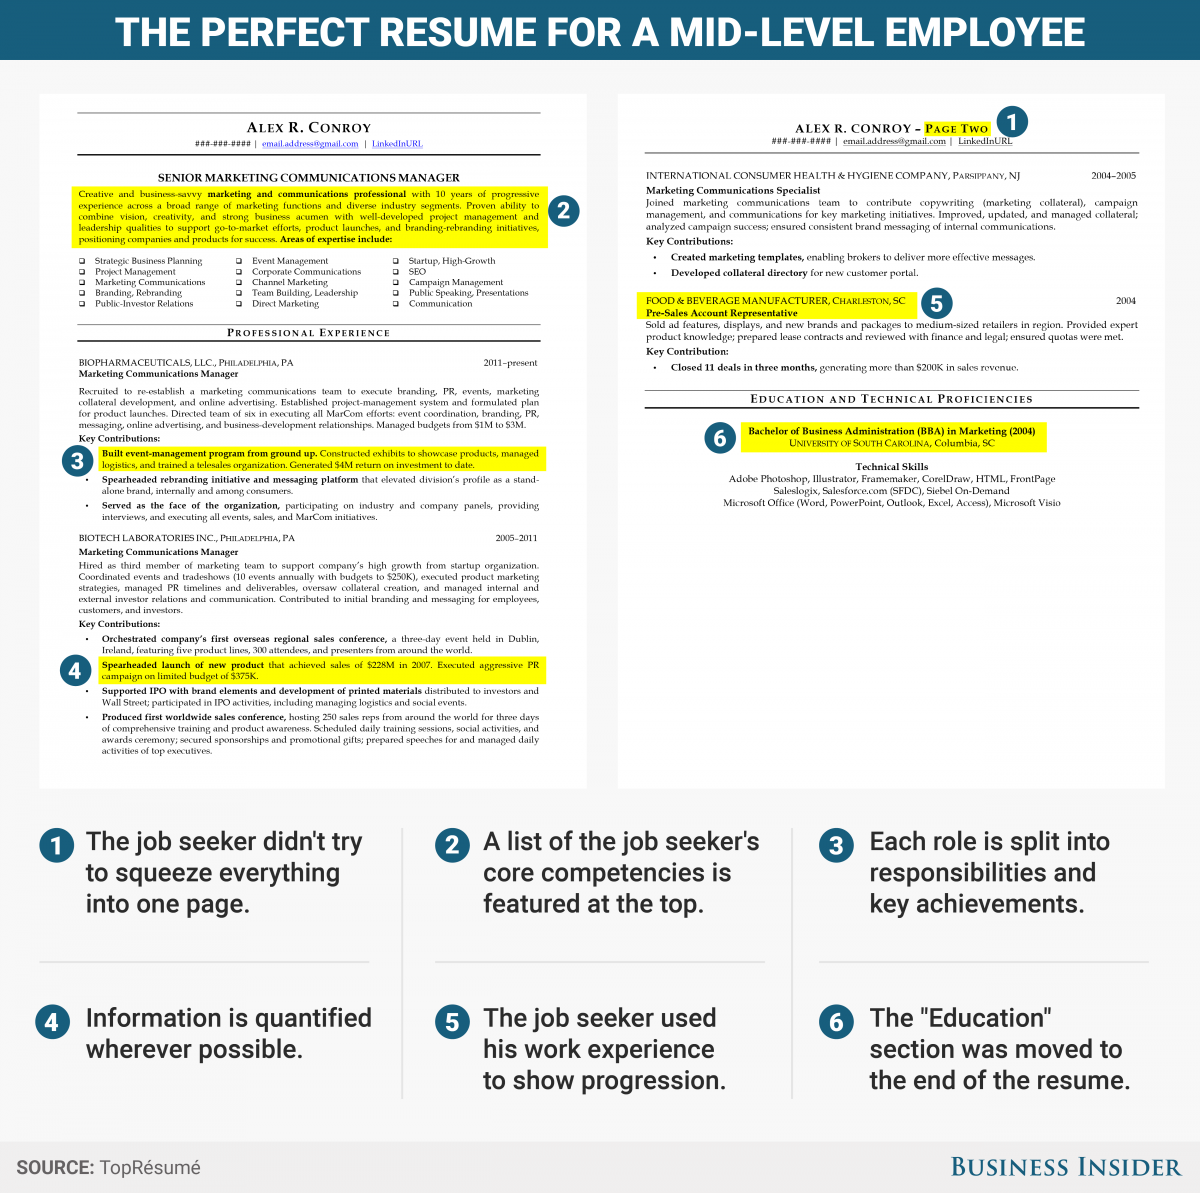 Here is an excellent résumé for a midlevel employee